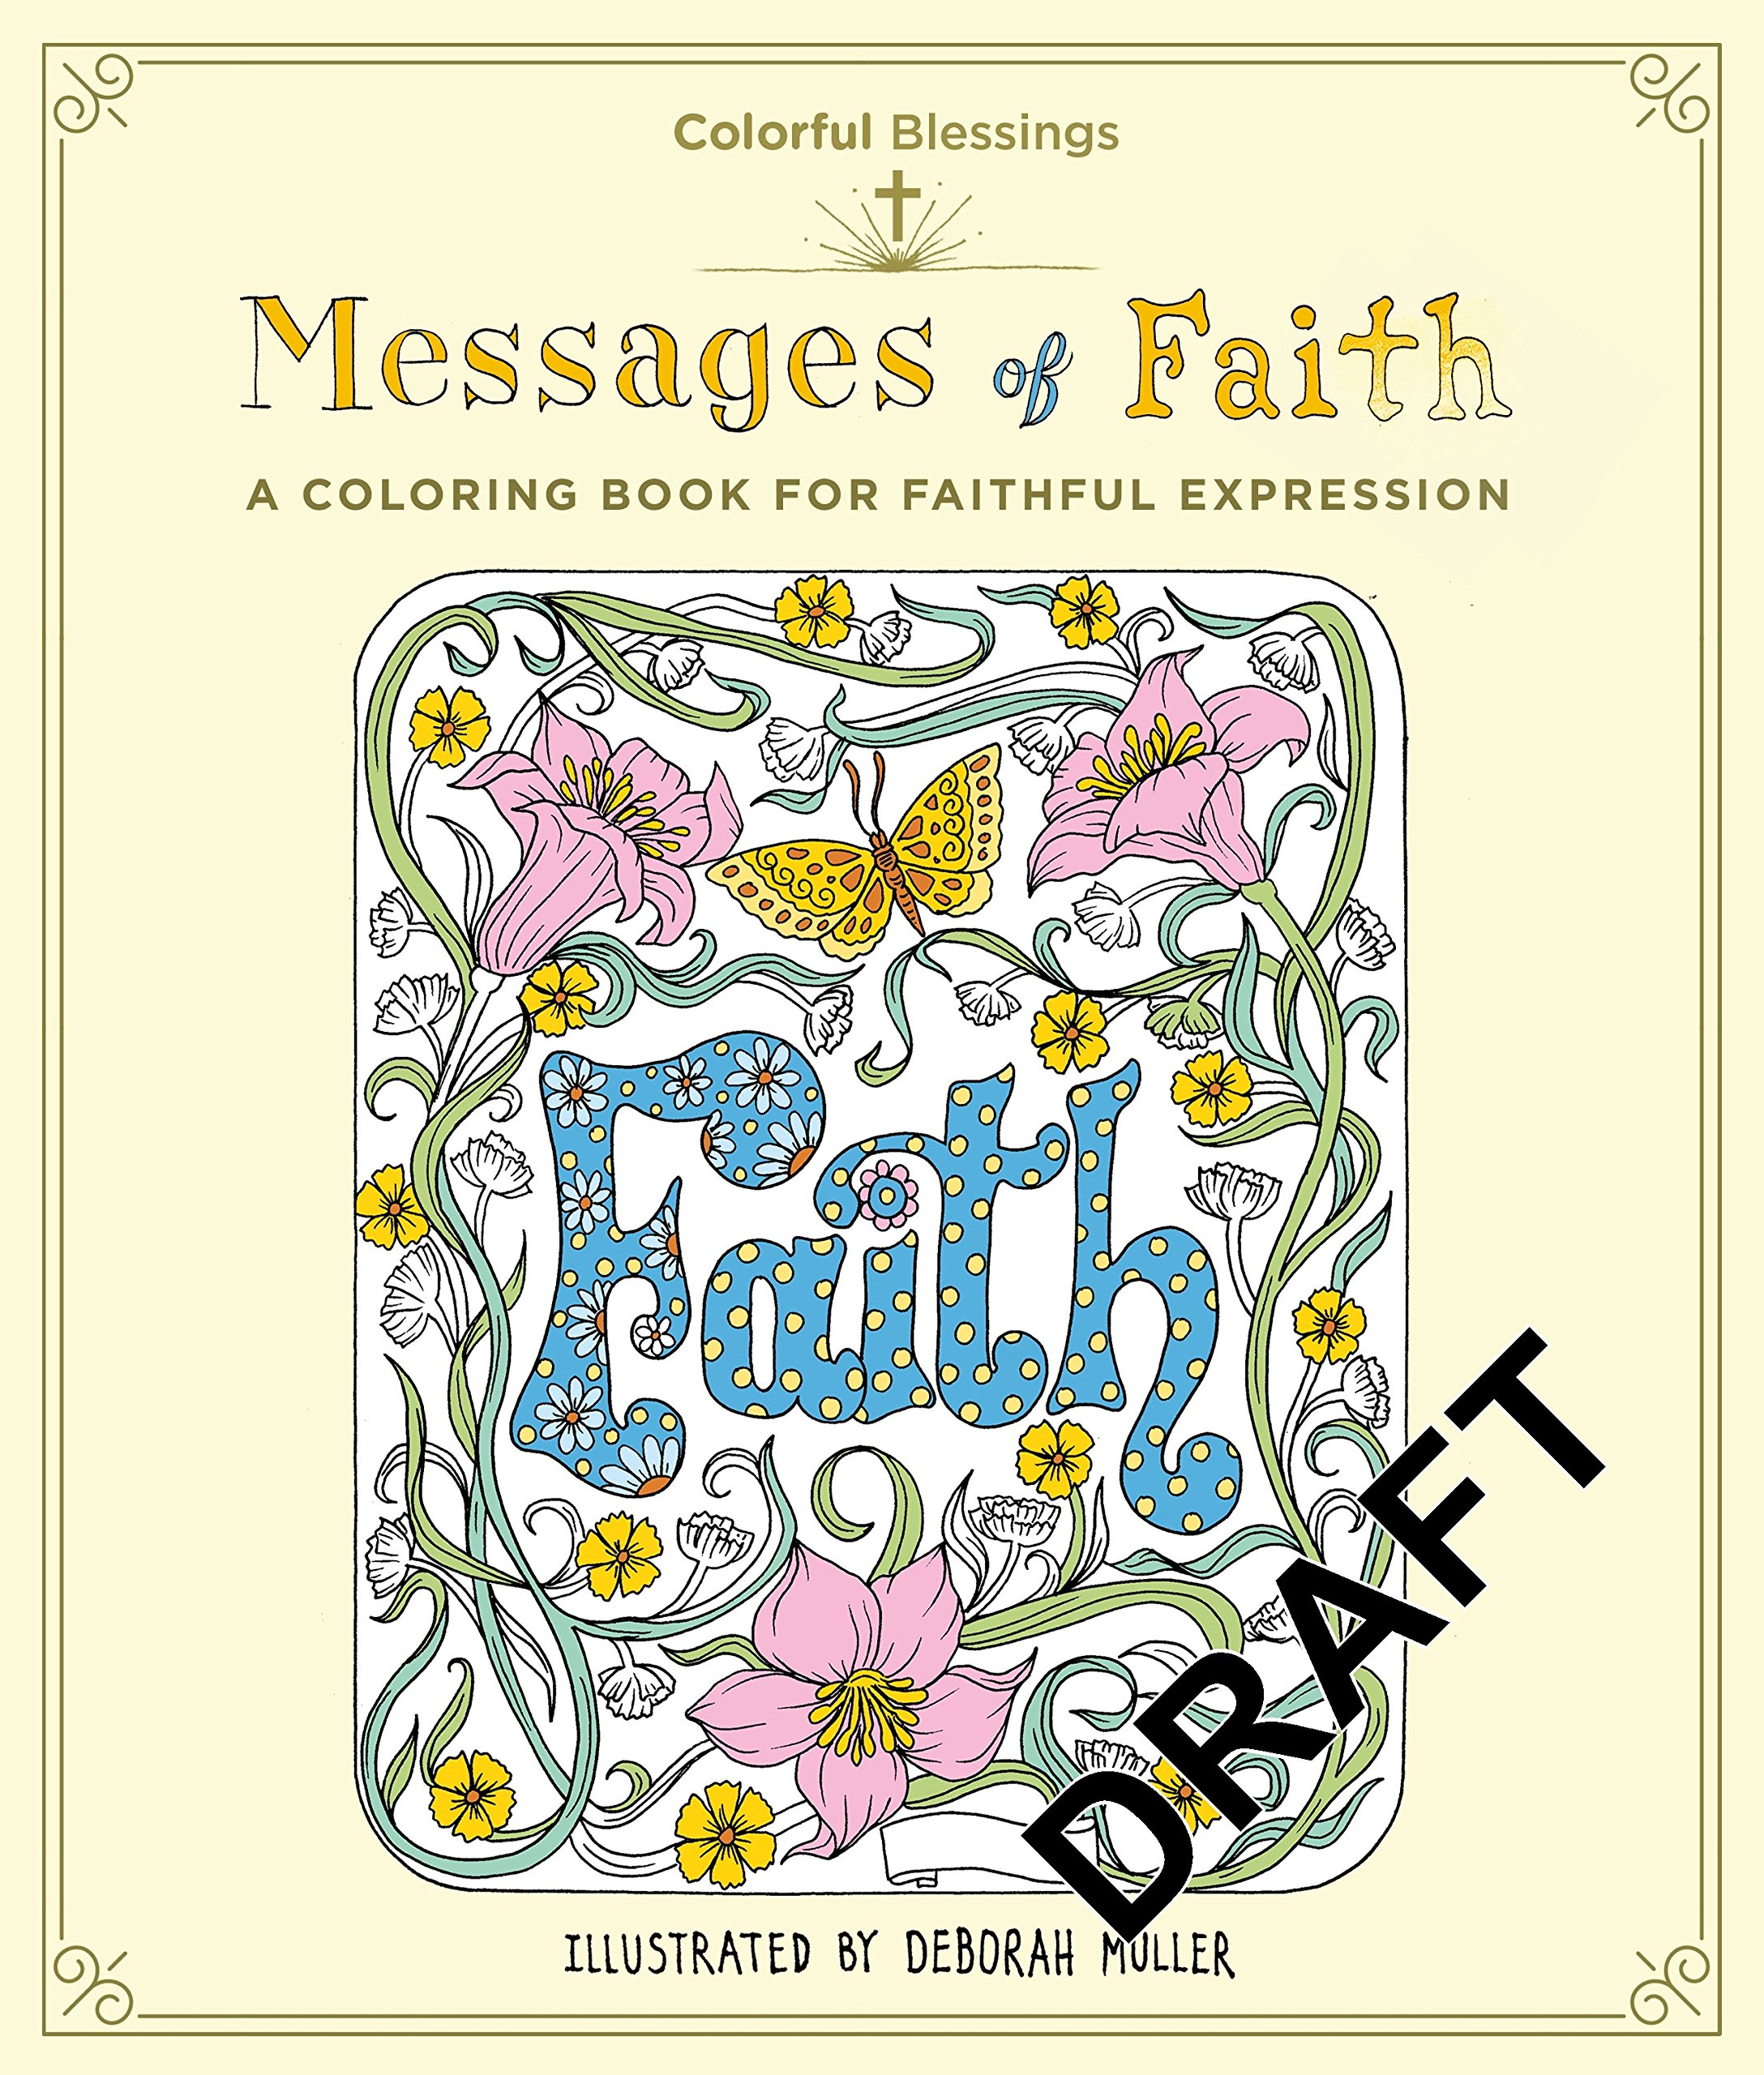 Colorful Blessings: Messages of Faith: A Coloring Book of Faithful Expression